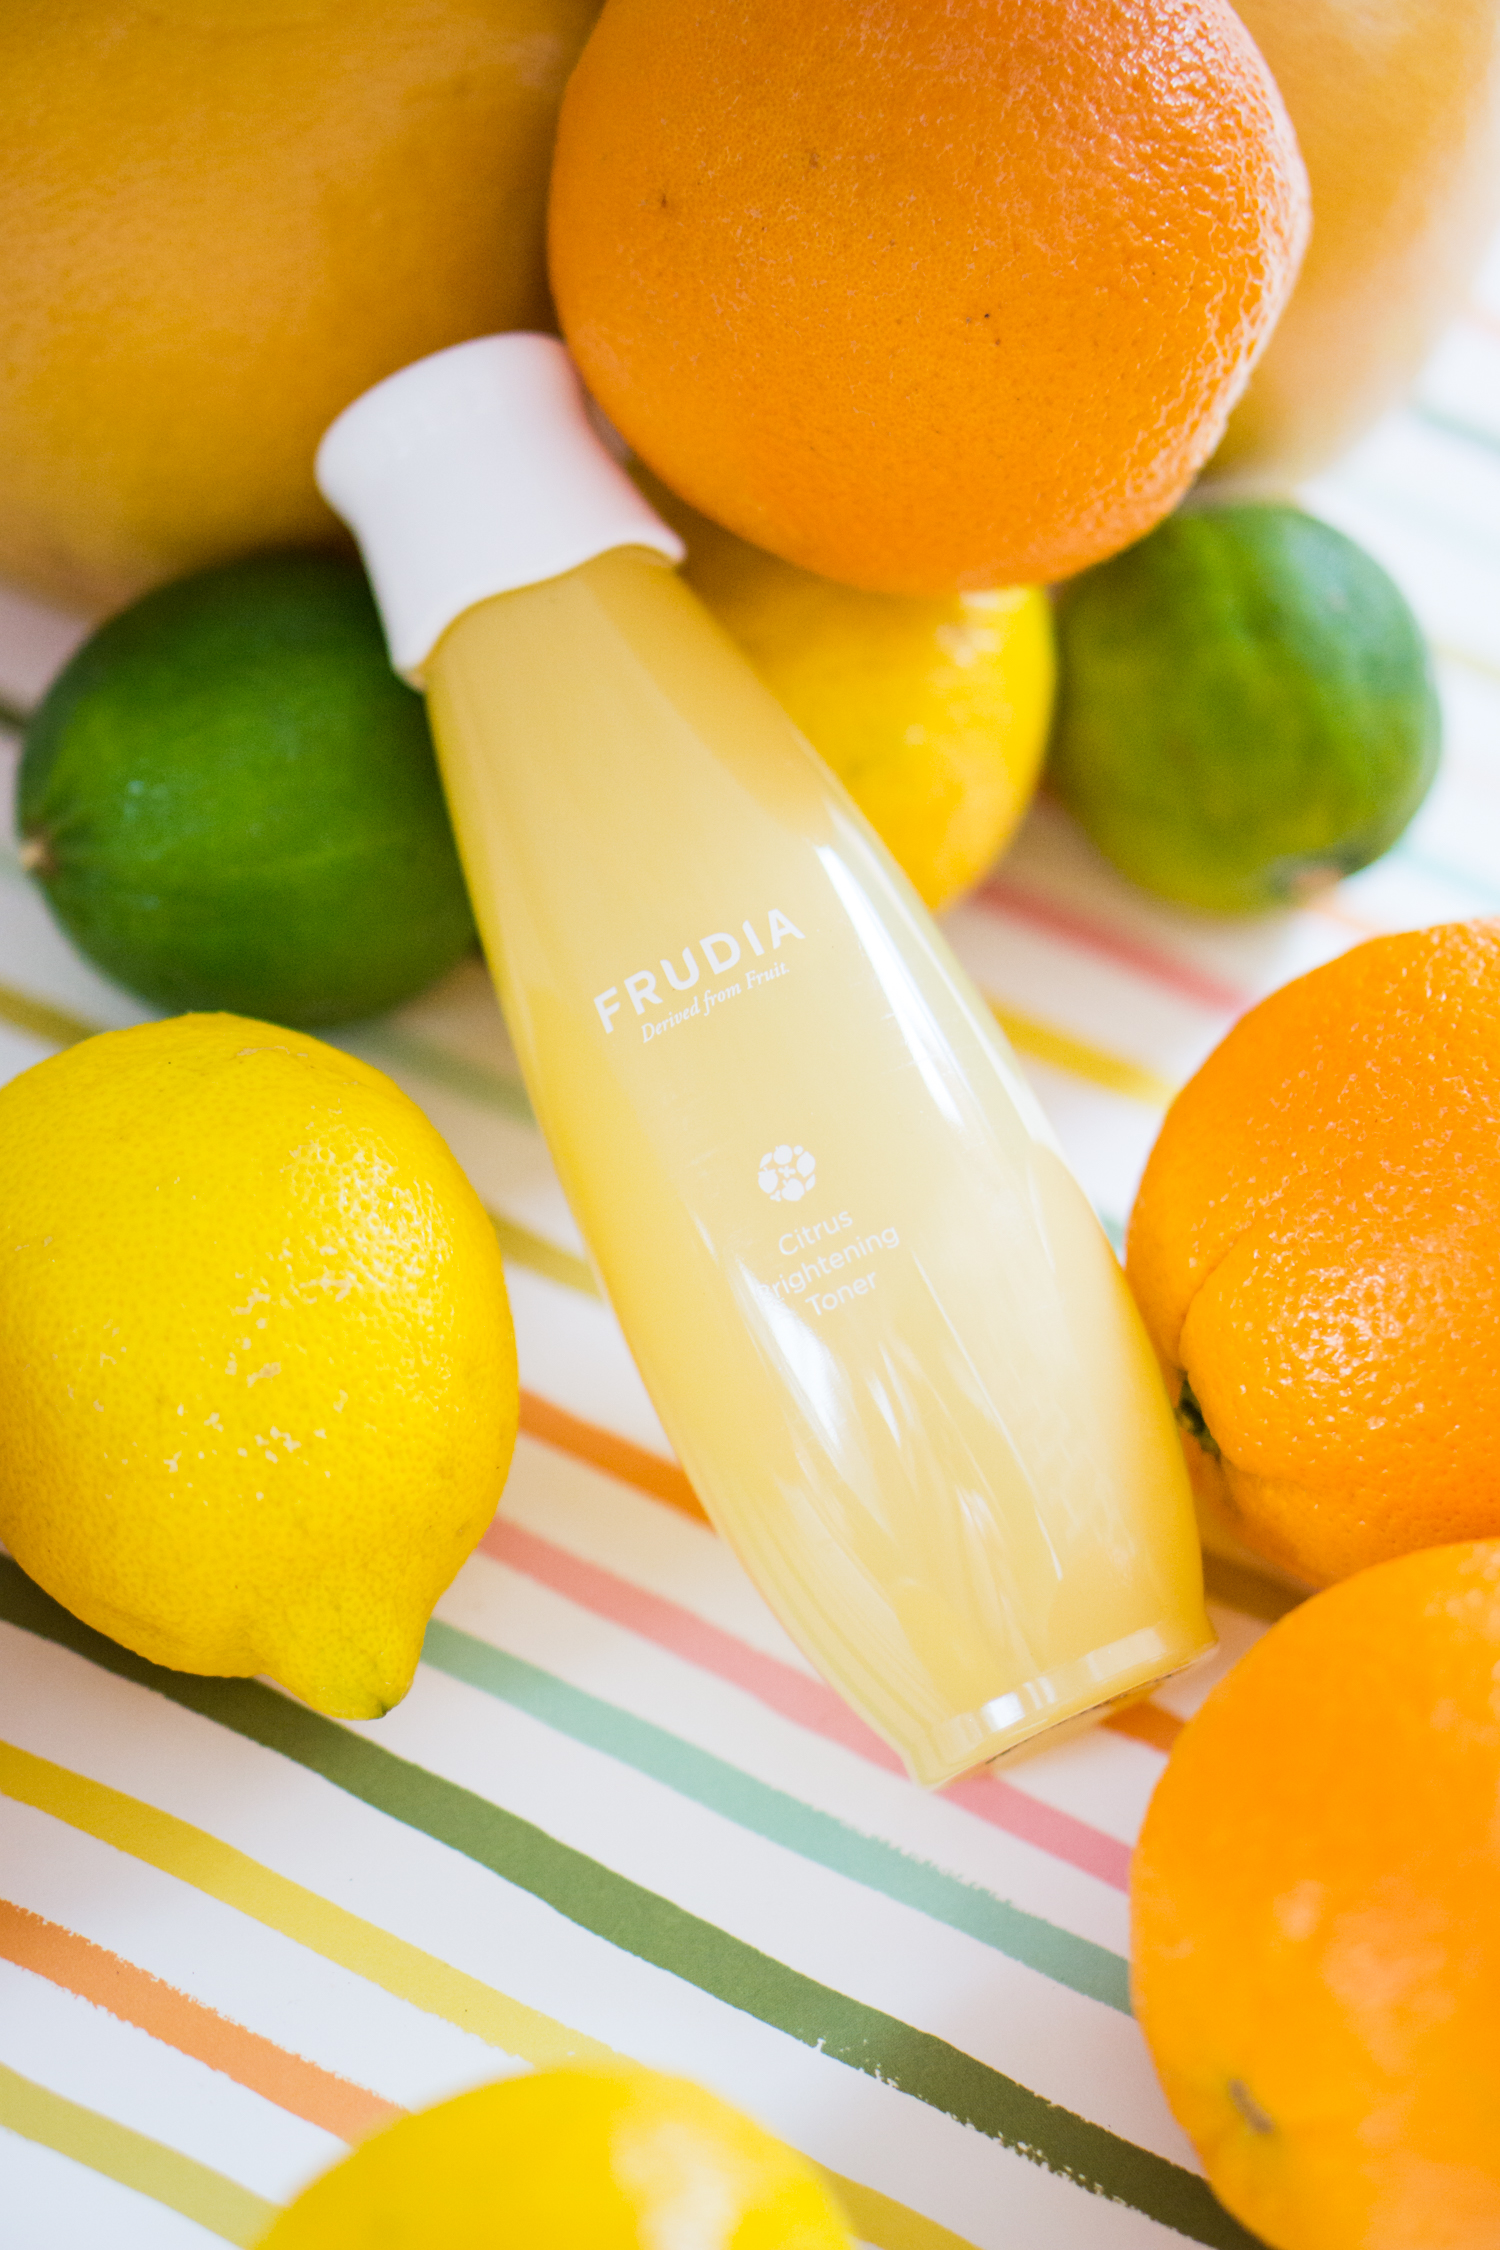 Frudia Citrus Brightening Toner review